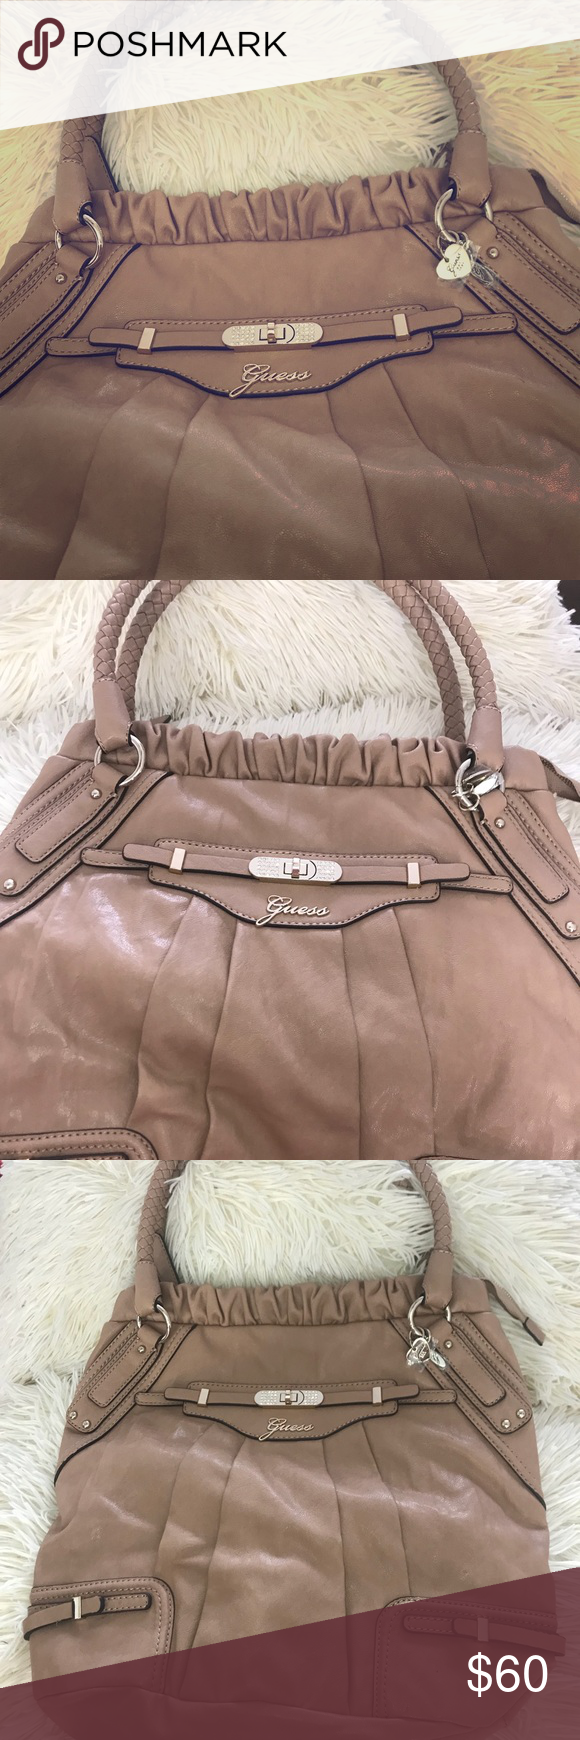 Spotted while shopping on Poshmark  Guess Handbag!  poshmark  fashion   shopping  style  Guess  Handbags 05b5d7c9b5